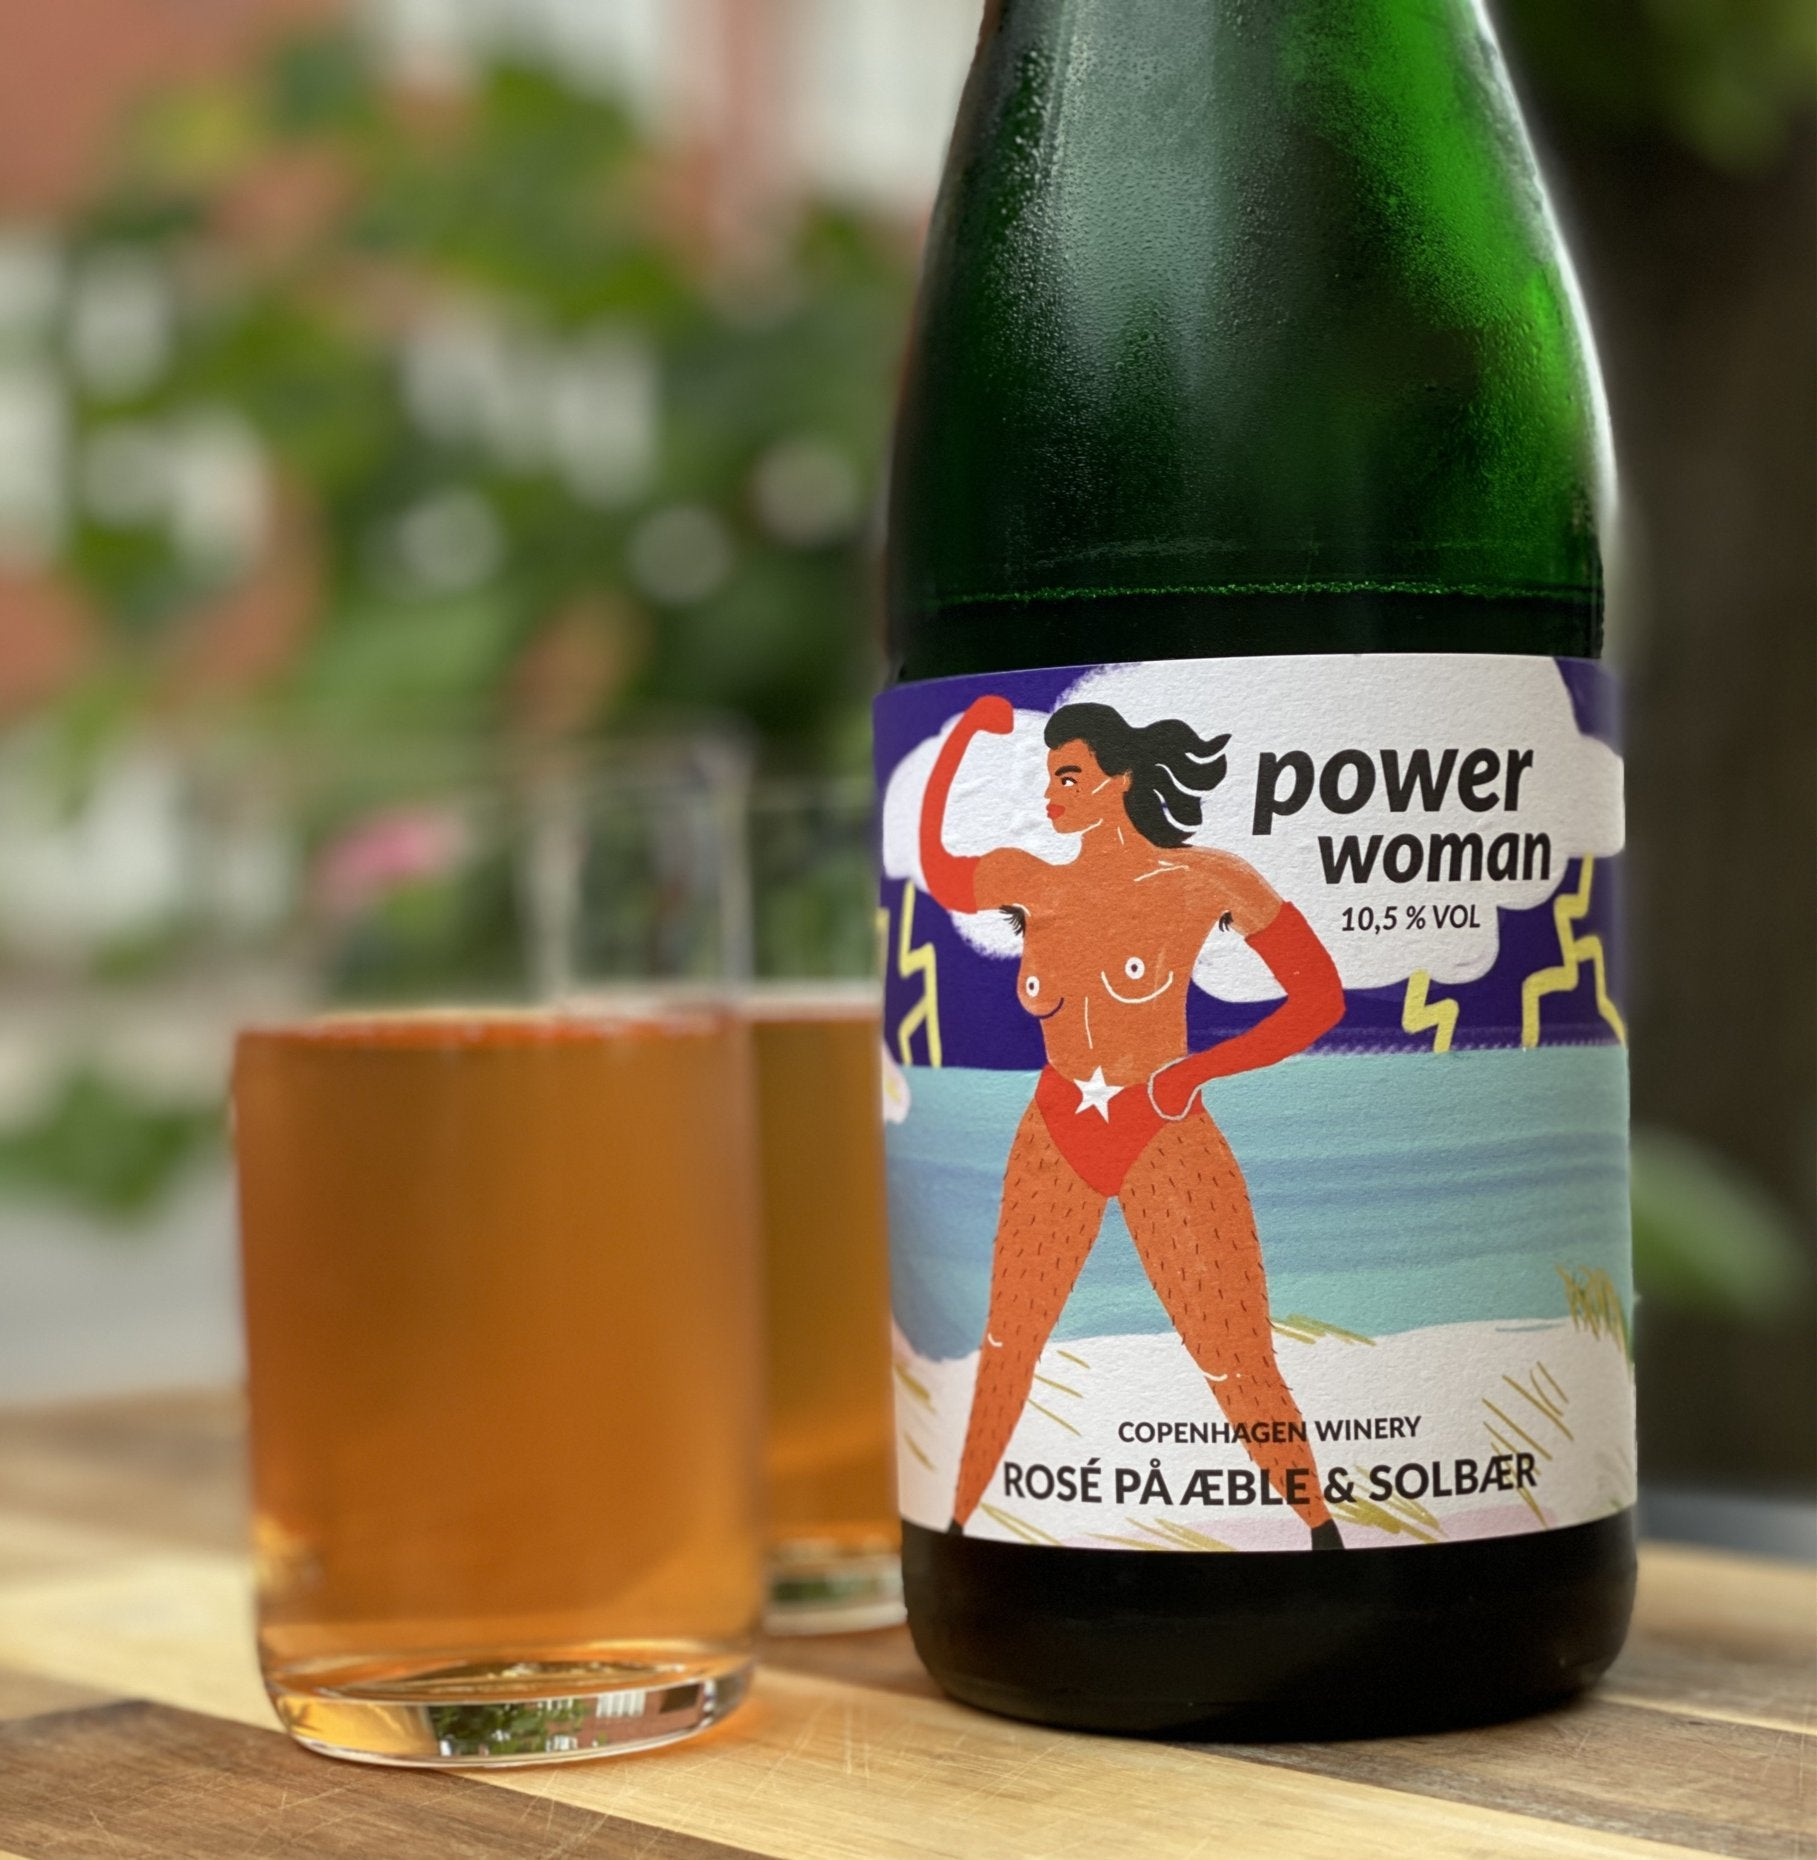 Nordic Bubbles: Power woman - 75 cl (10,5%)